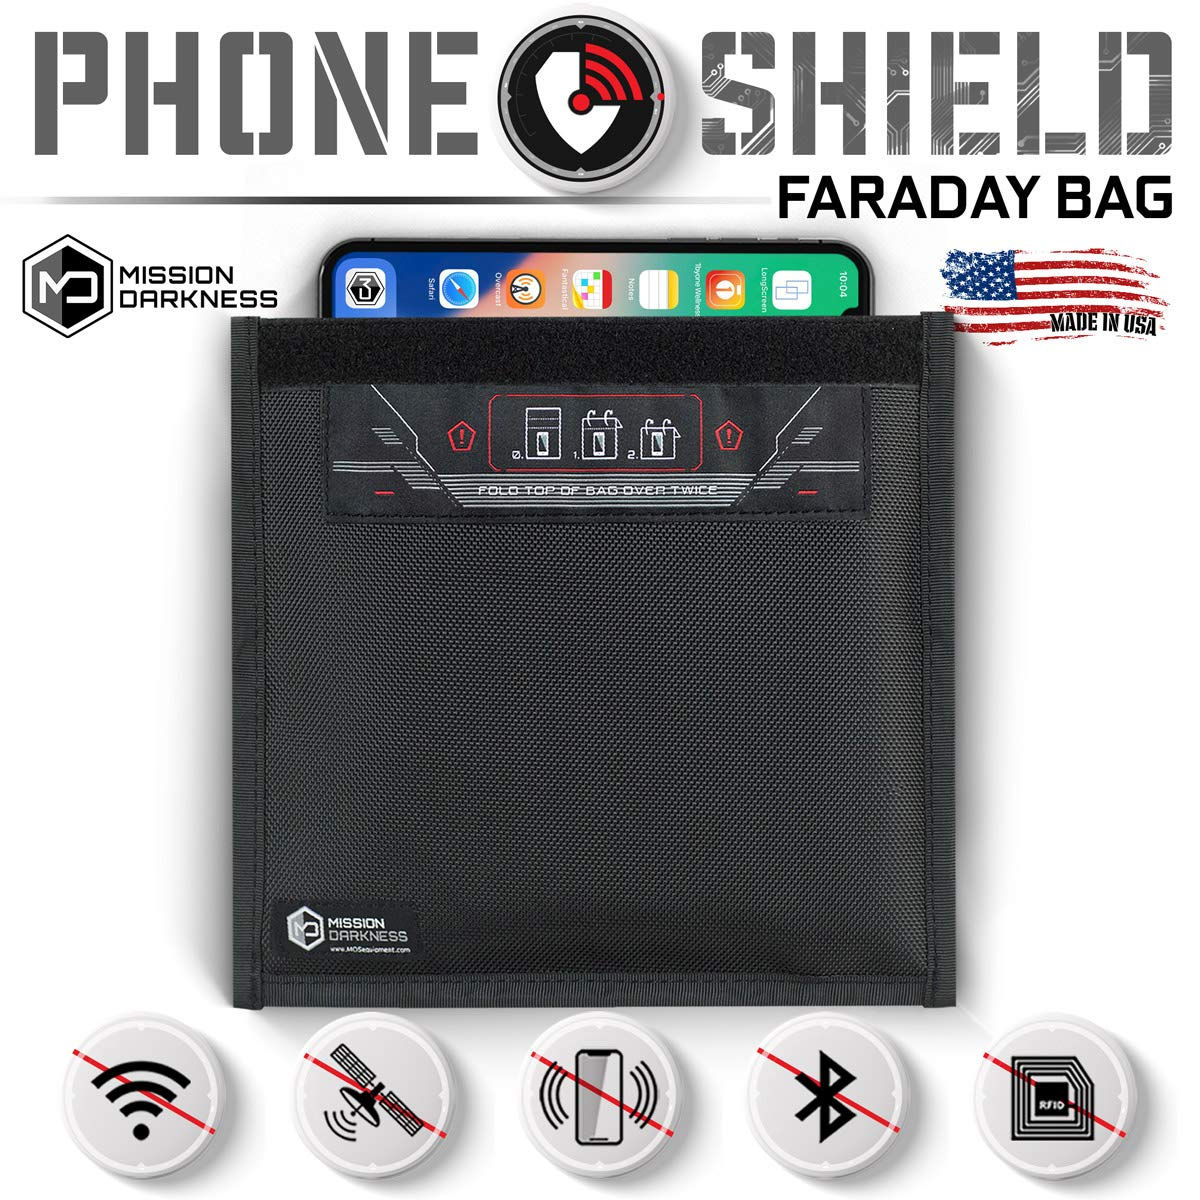 Mission Darkness Non-Window Faraday Bag for Phones - Device Shielding for Law Enforcement, Military, Executive Privacy, Travel & Data Security, Anti-Hacking & Anti-Tracking Assurance by Mission Darkness